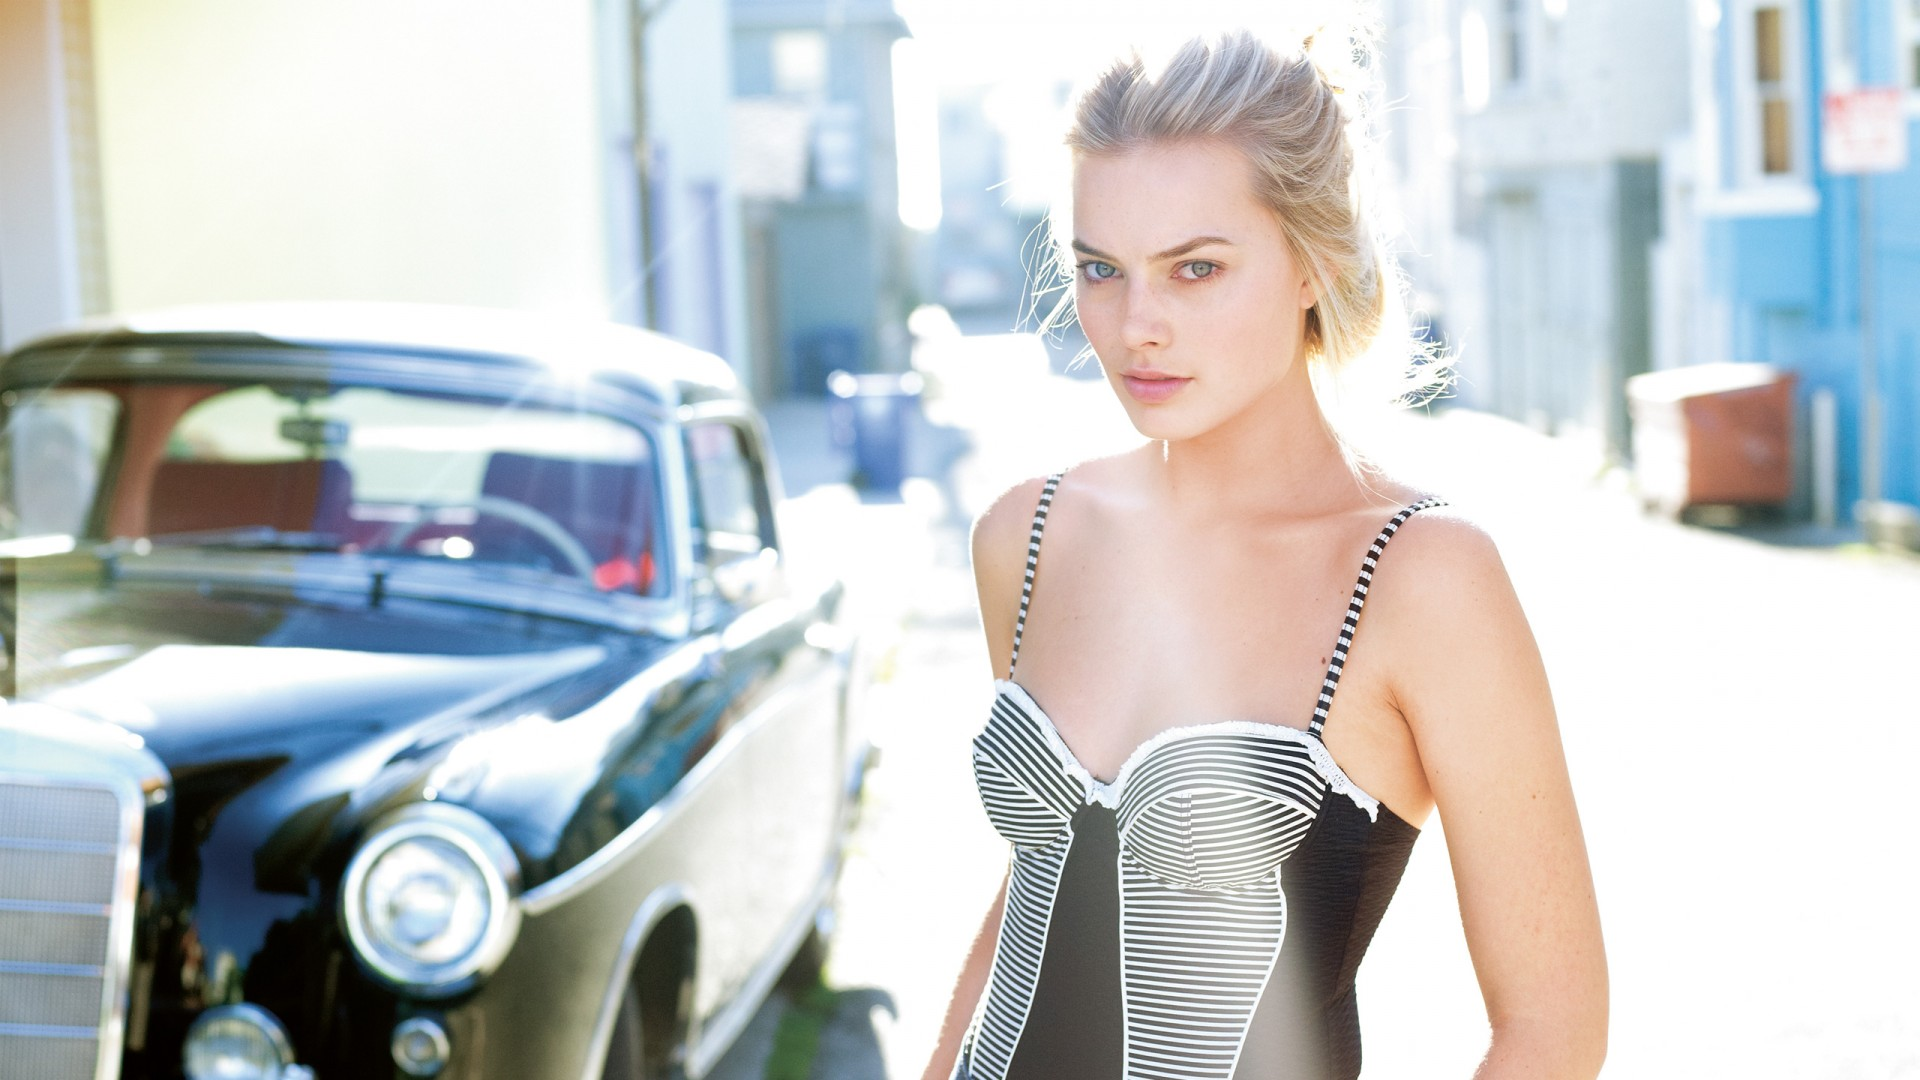 Full Hd Wallpapers Of Cute Animals Margot Robbie 2016 Wallpapers Hd Wallpapers Id 17505